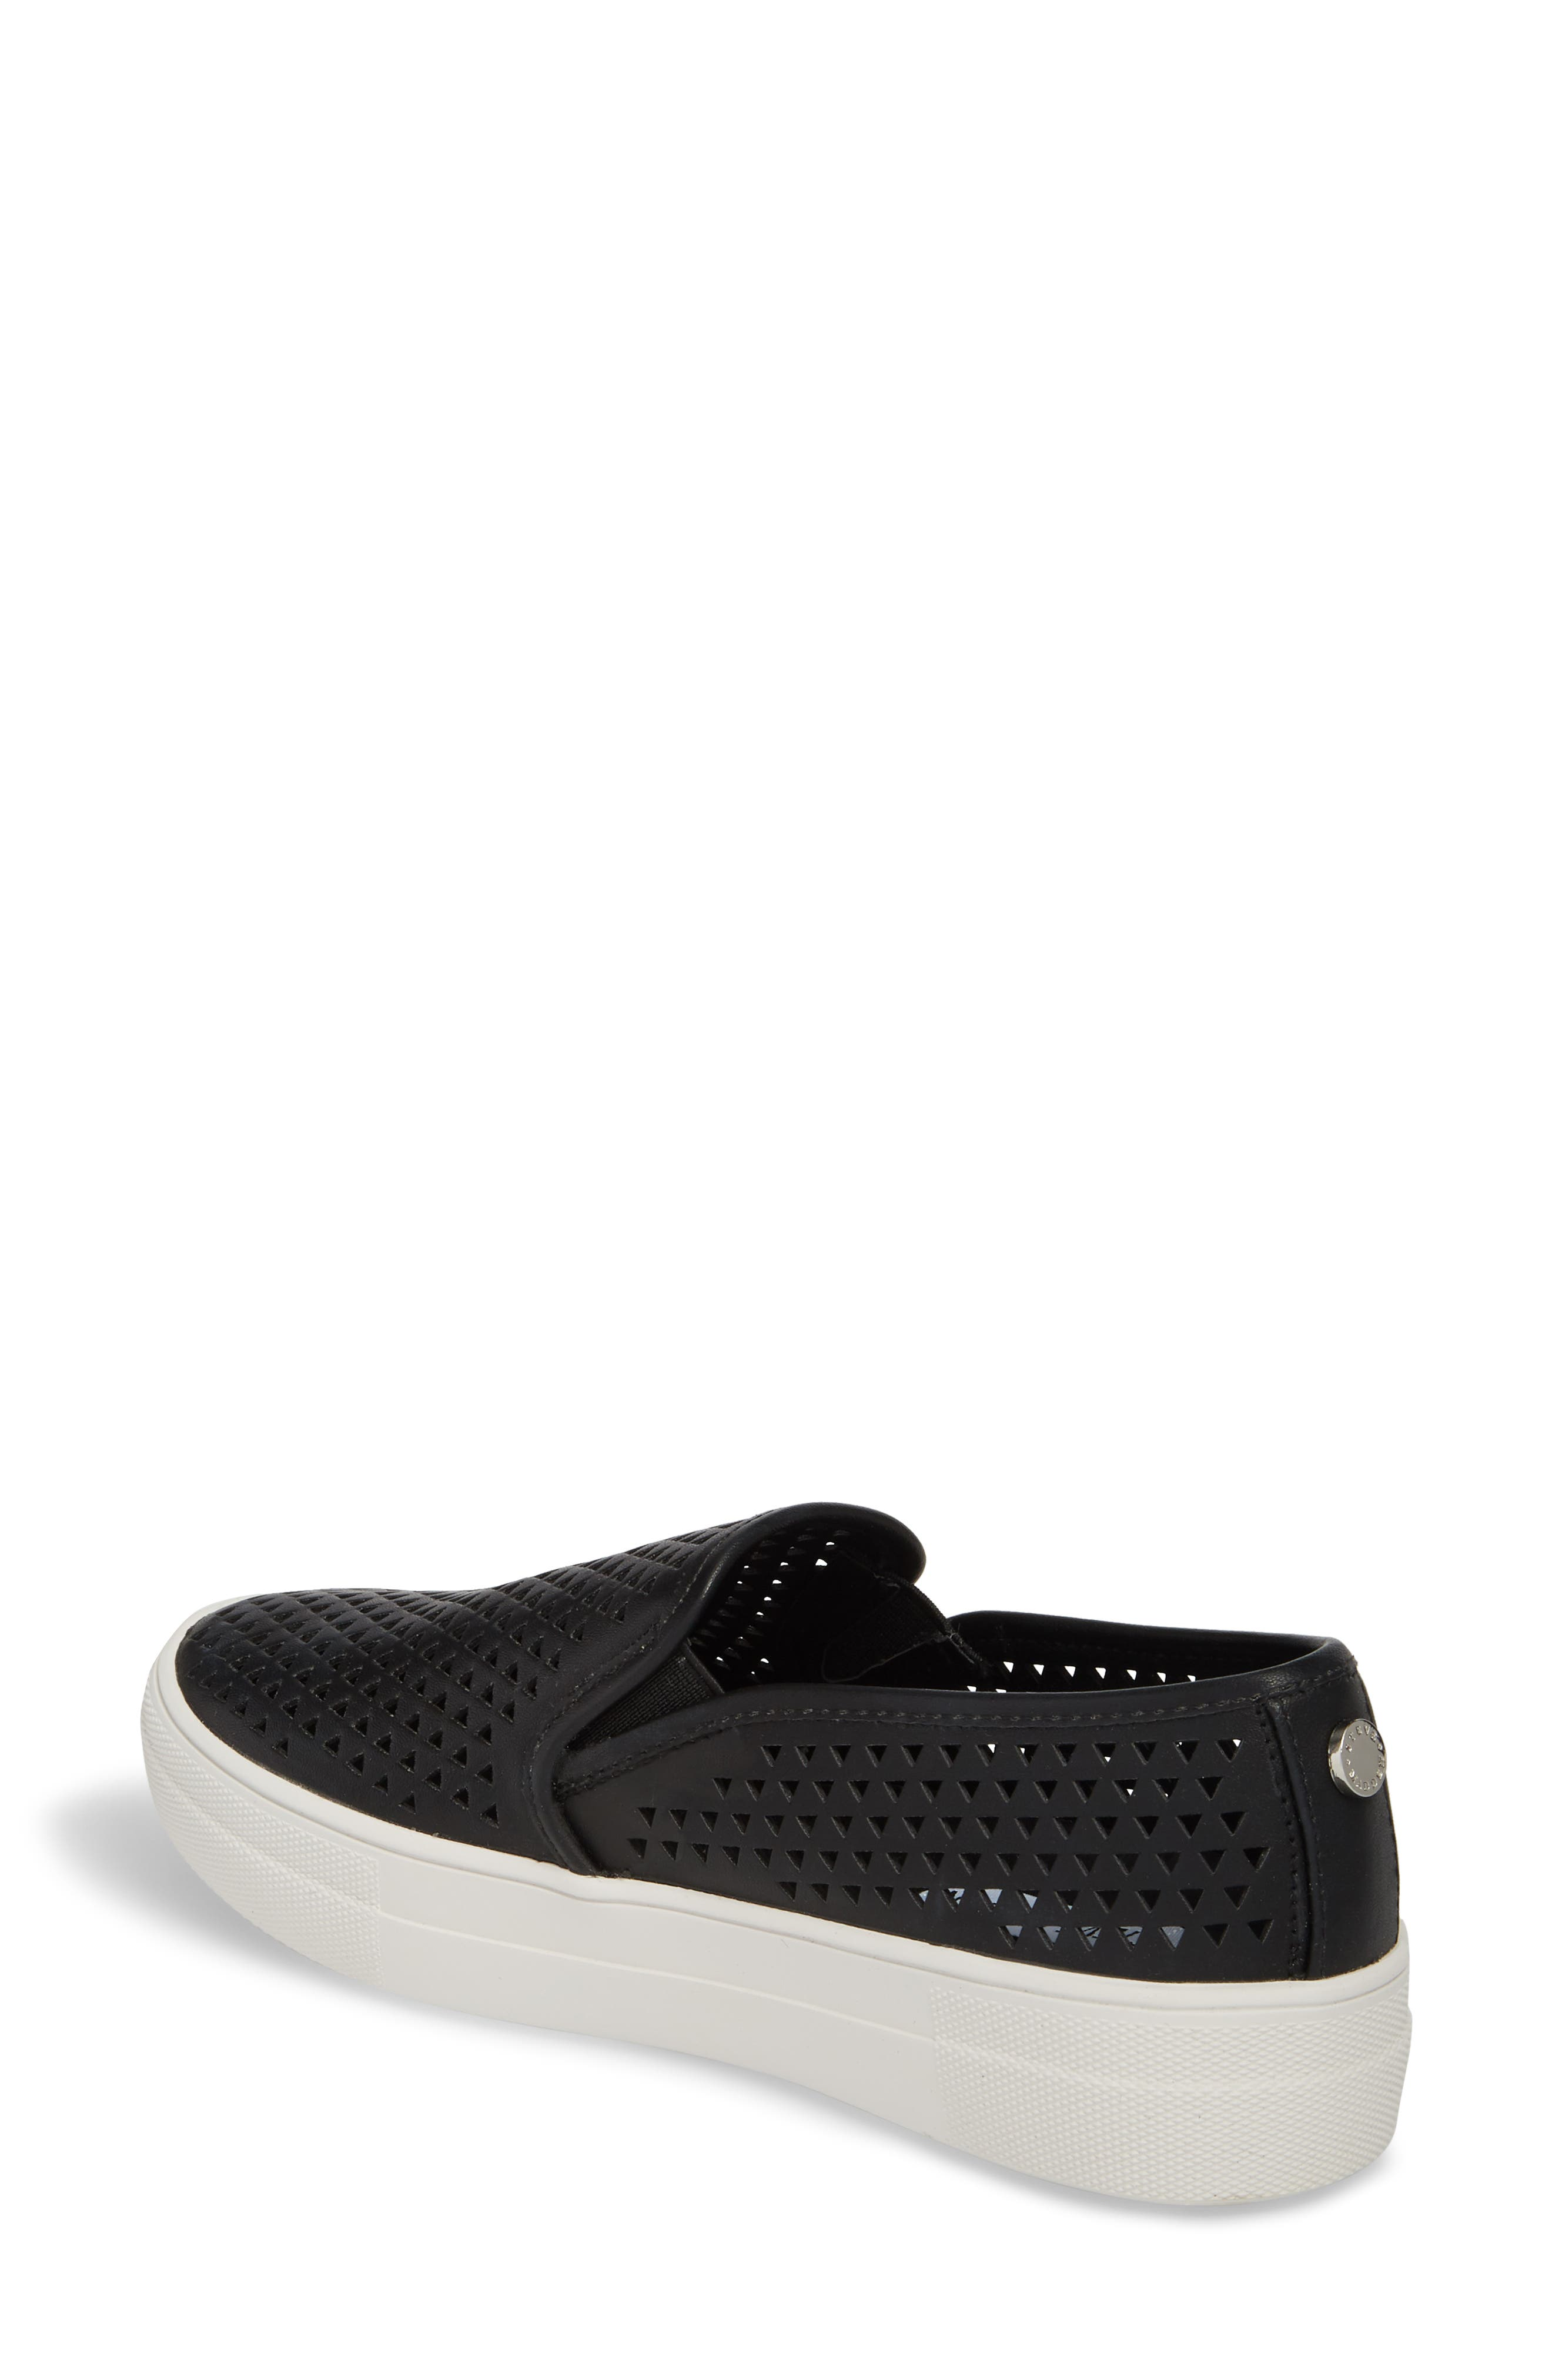 Gal-P Perforated Slip-On Sneaker,                             Alternate thumbnail 2, color,                             Black